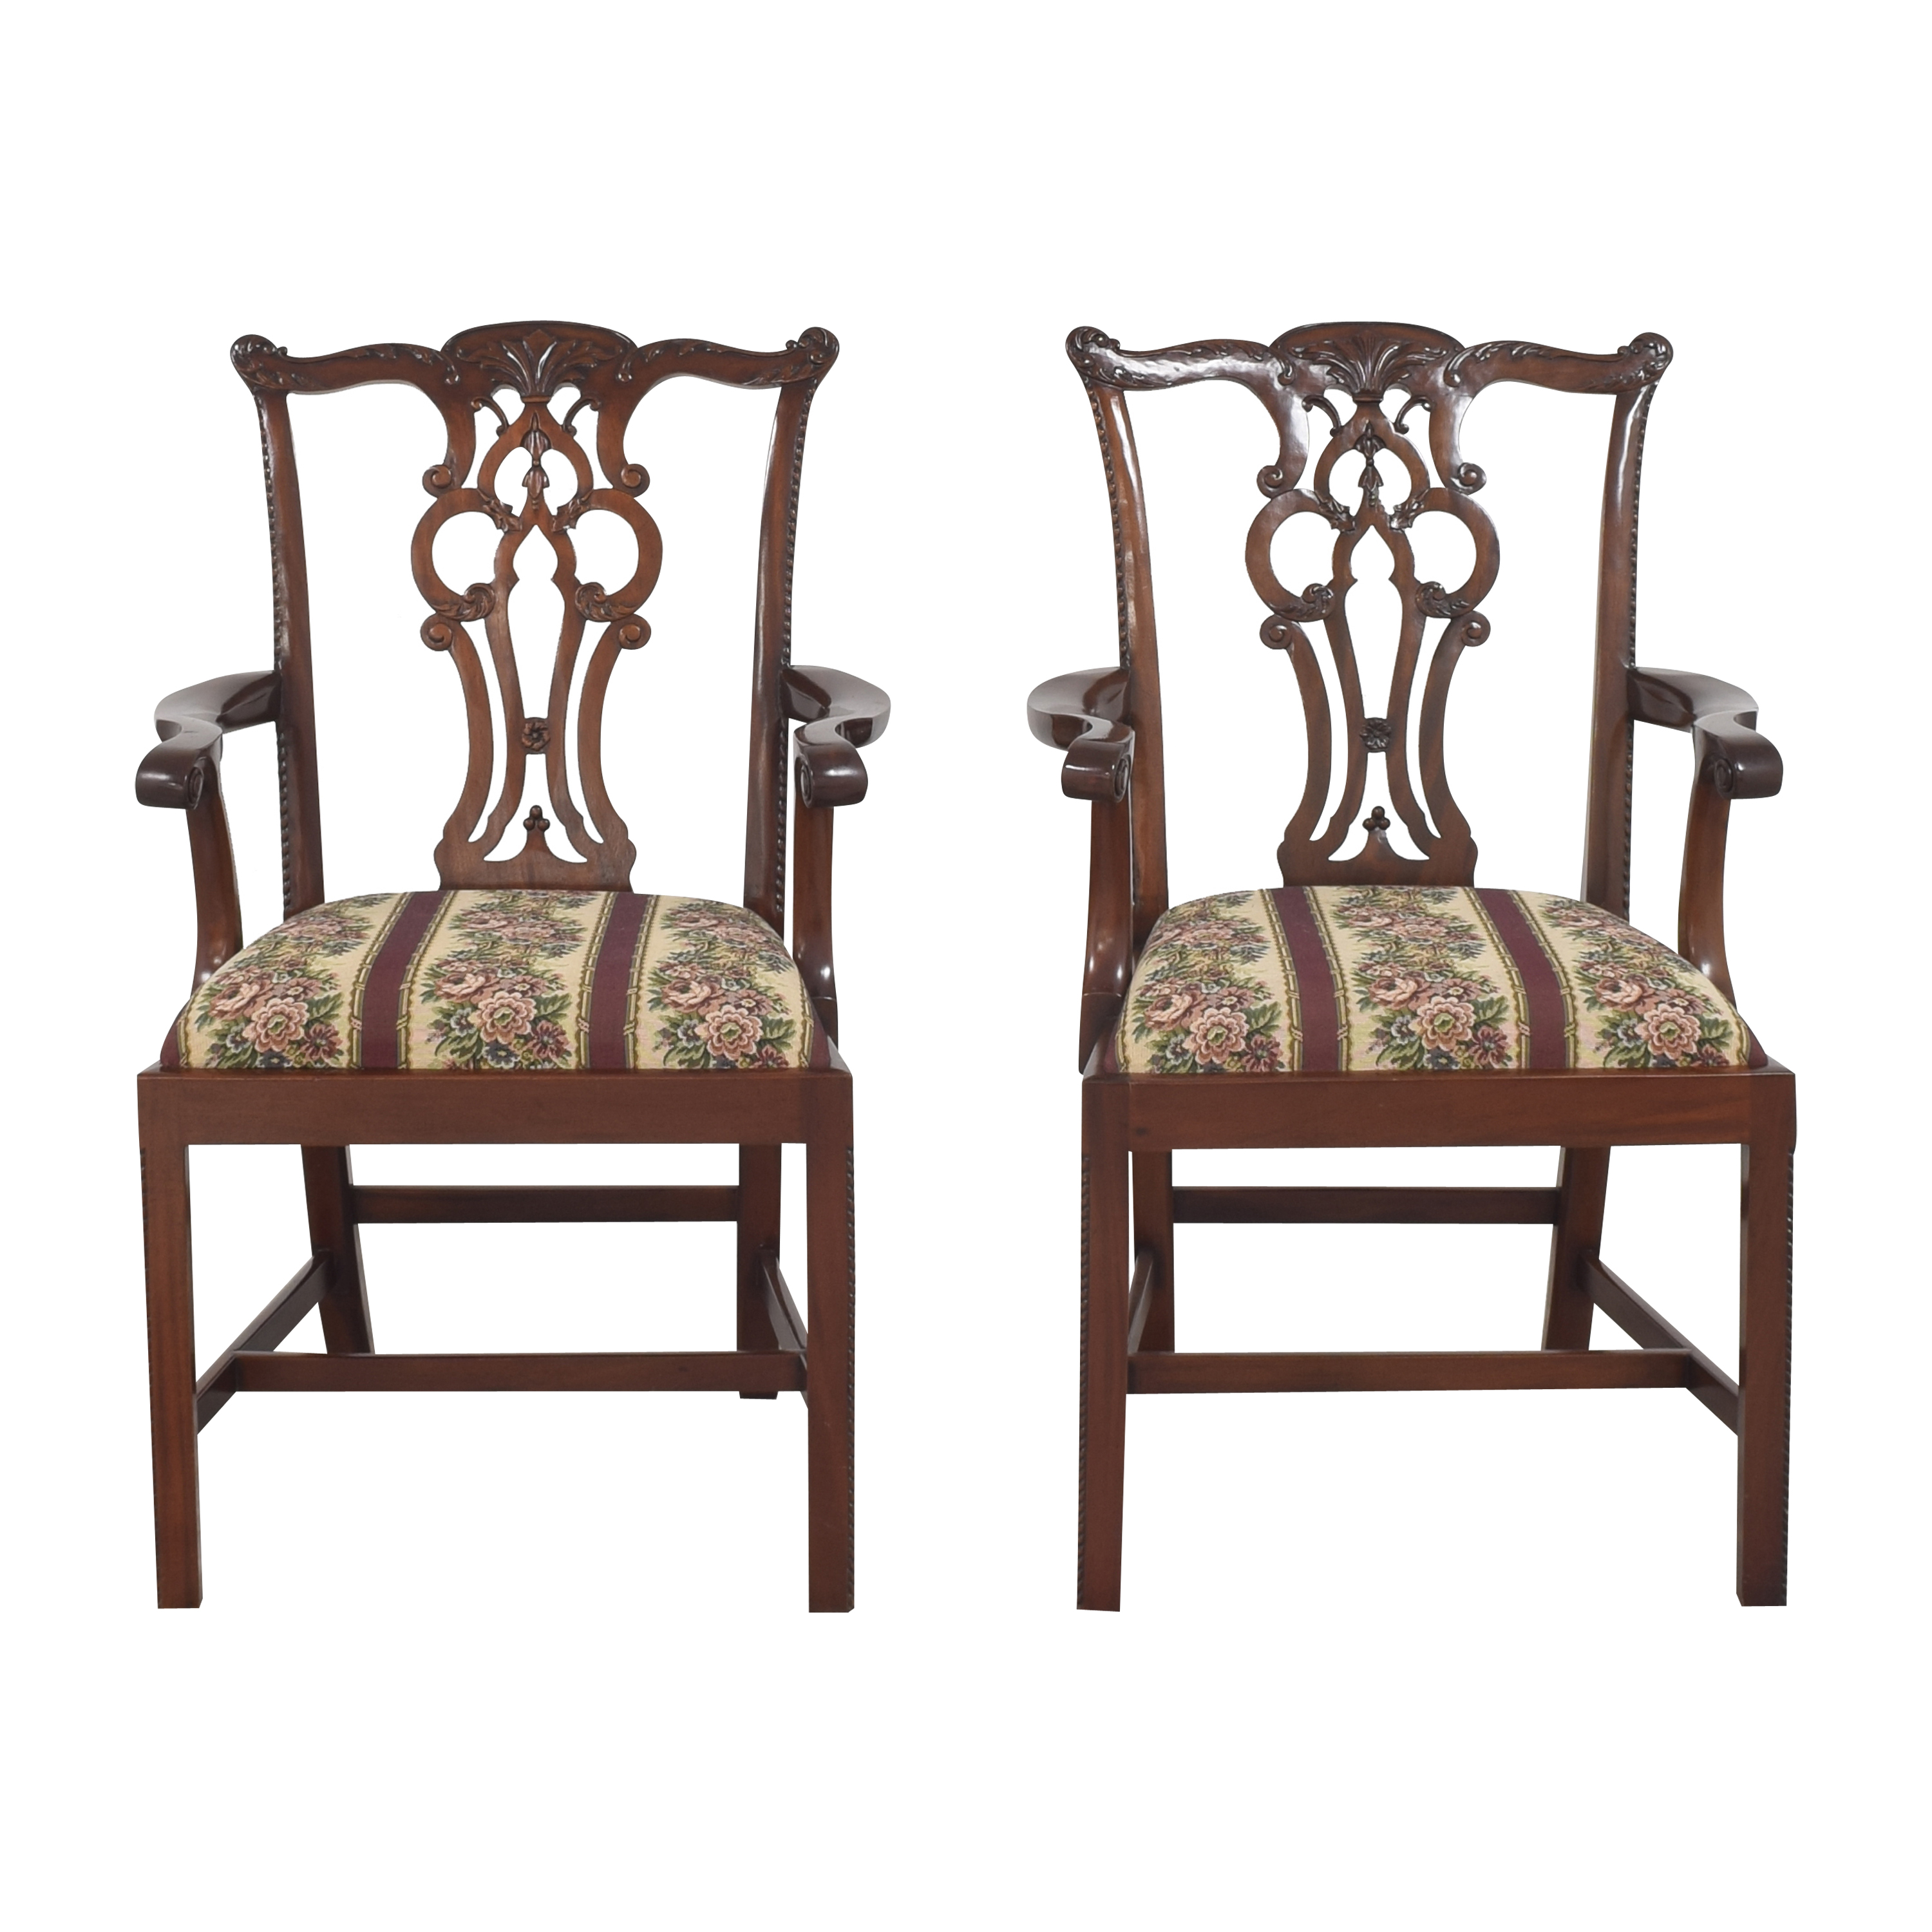 Maitland-Smith Chippendale Upholstered Dining Arm Chairs Maitland-Smith